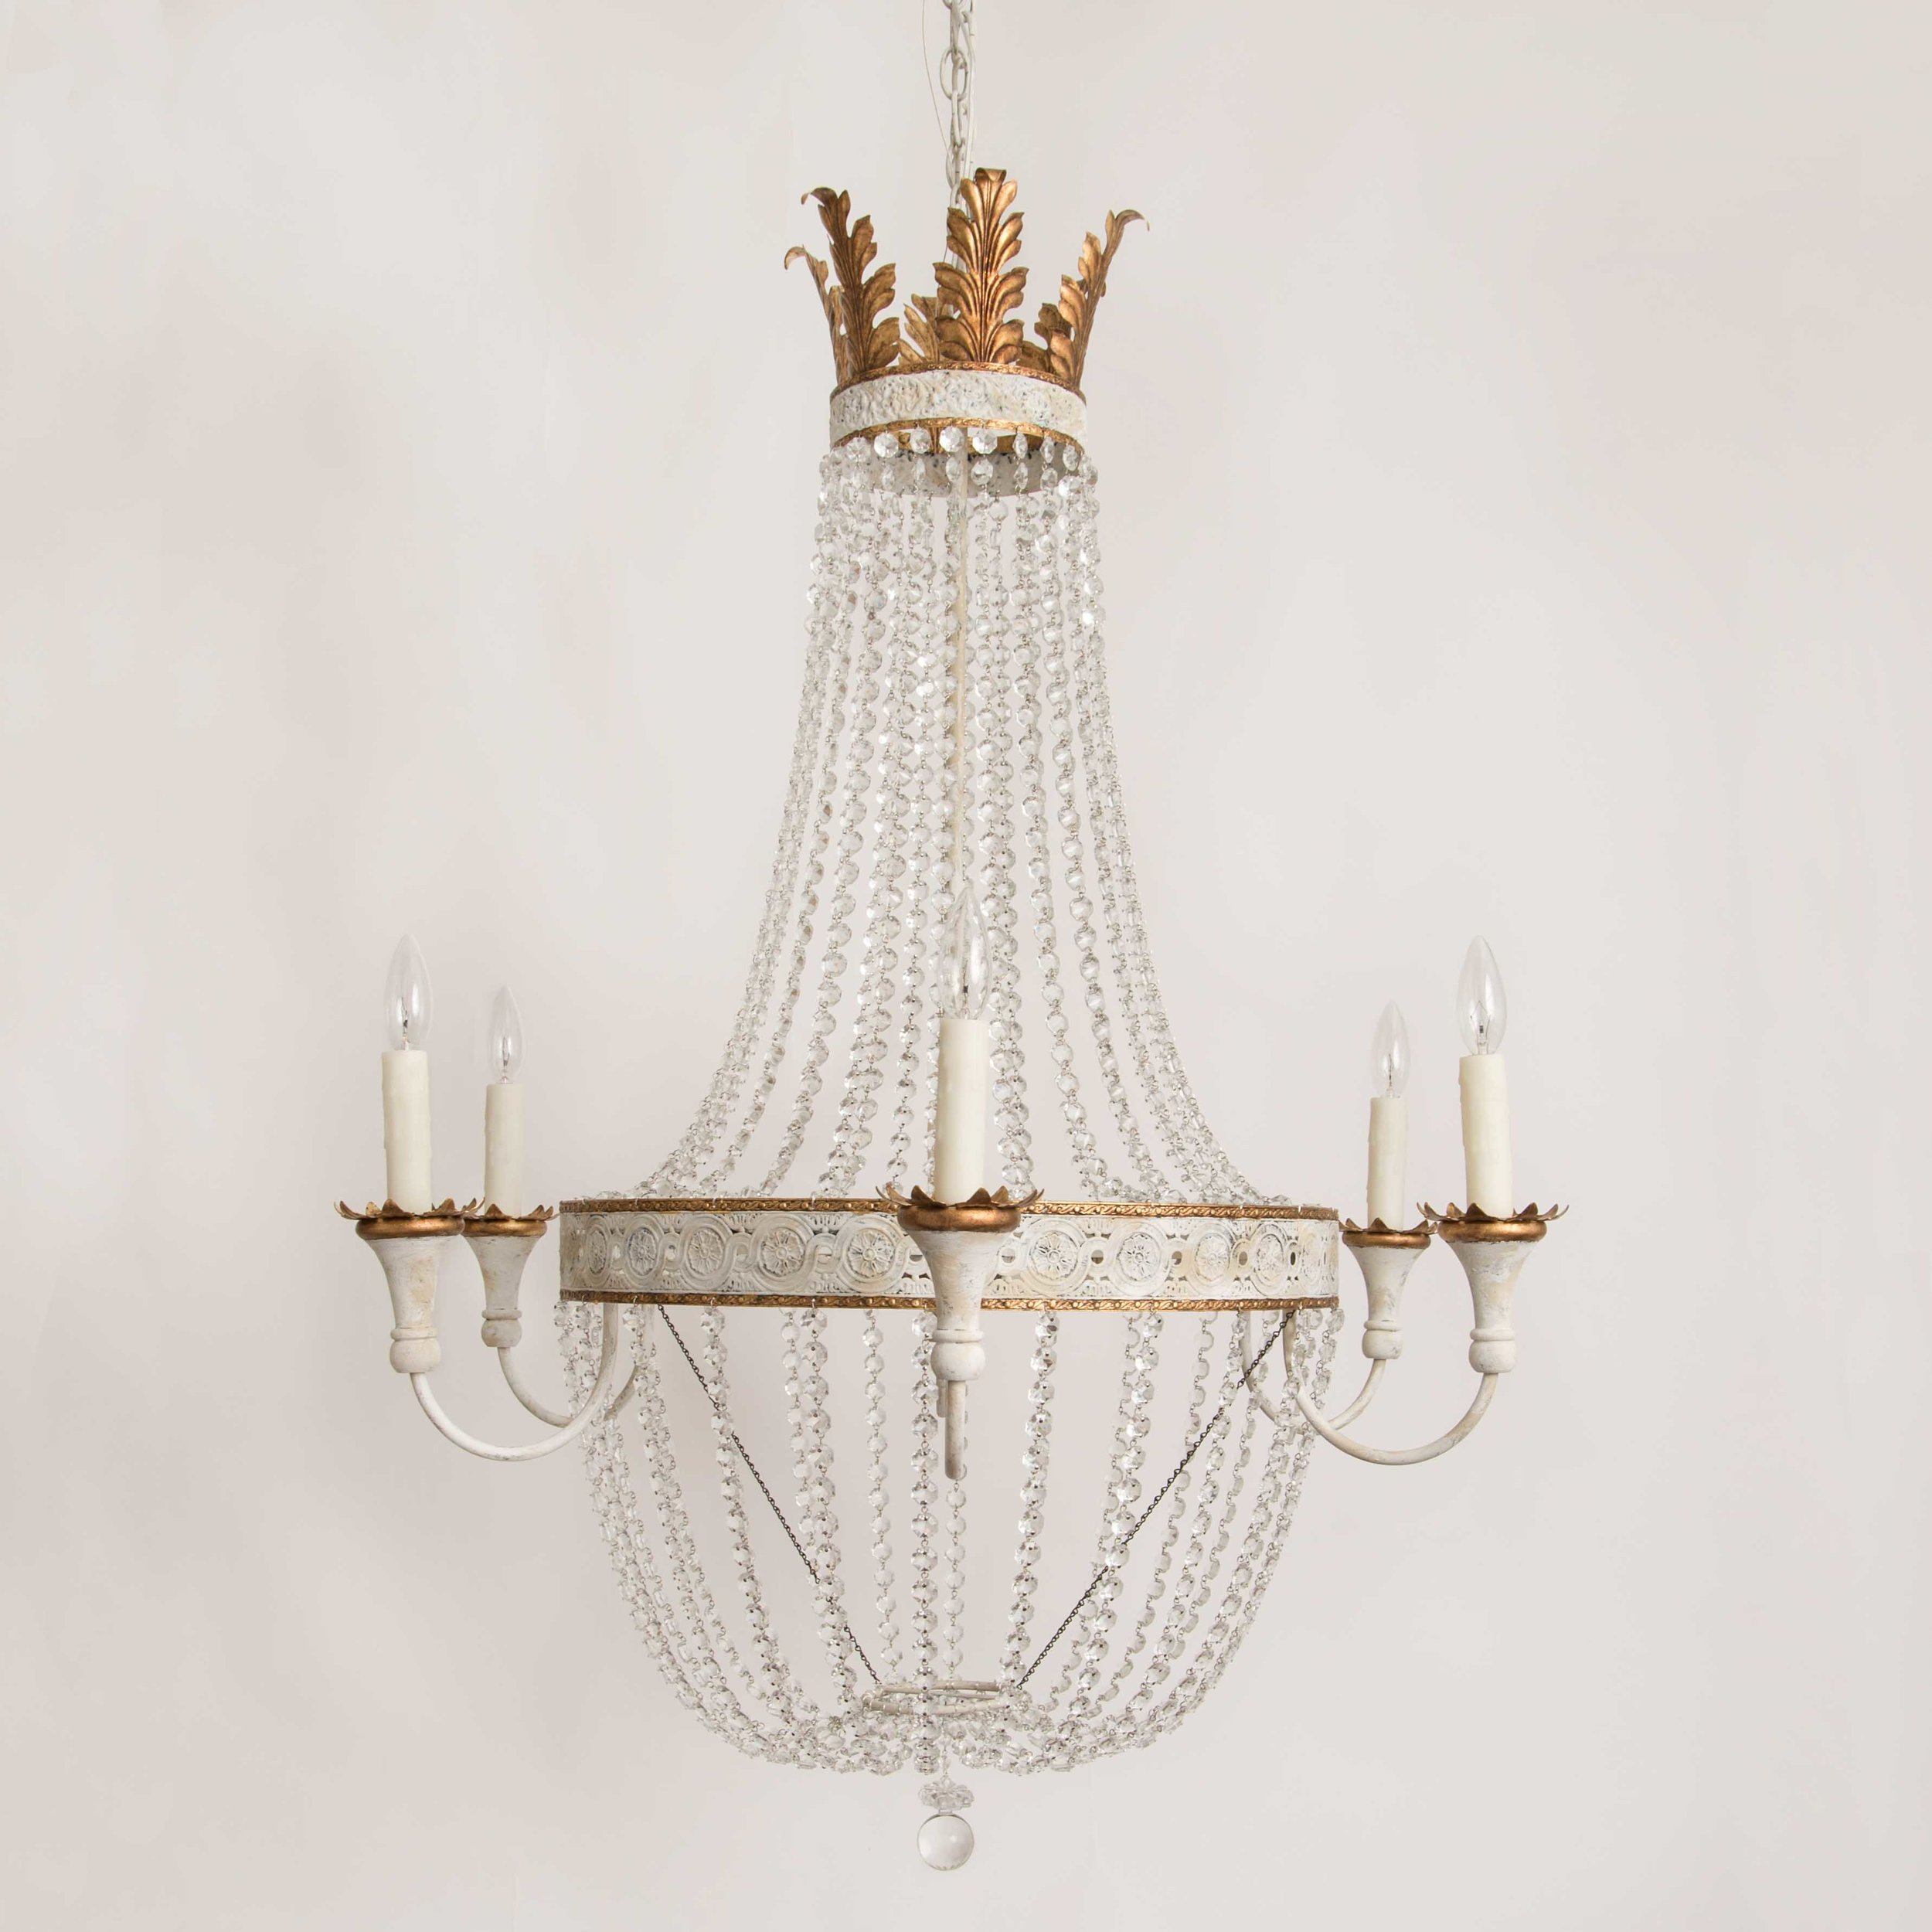 Lizette 6 Arm Chandelier-50.jpg